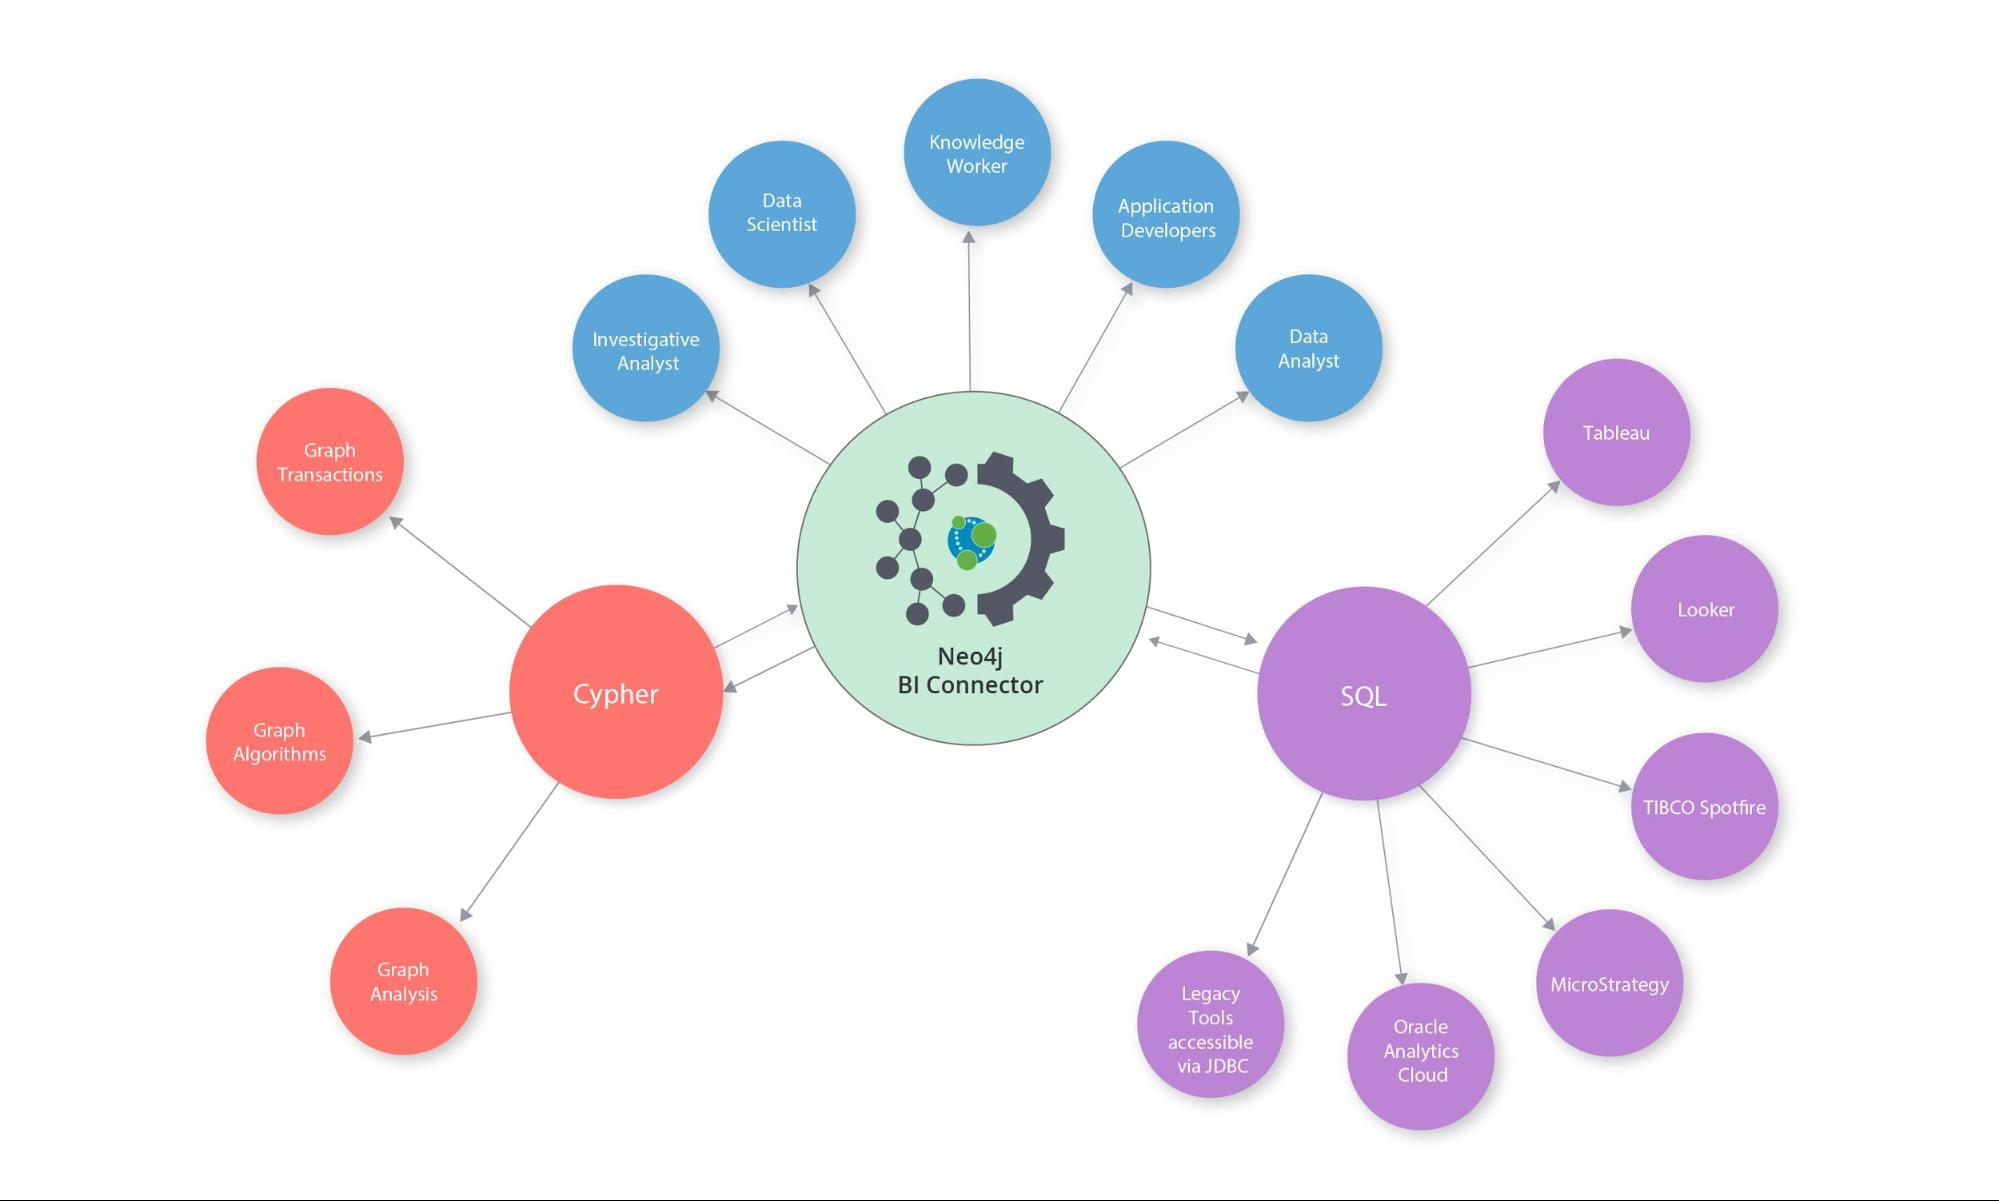 Learn more about the Neo4j BI Connector.